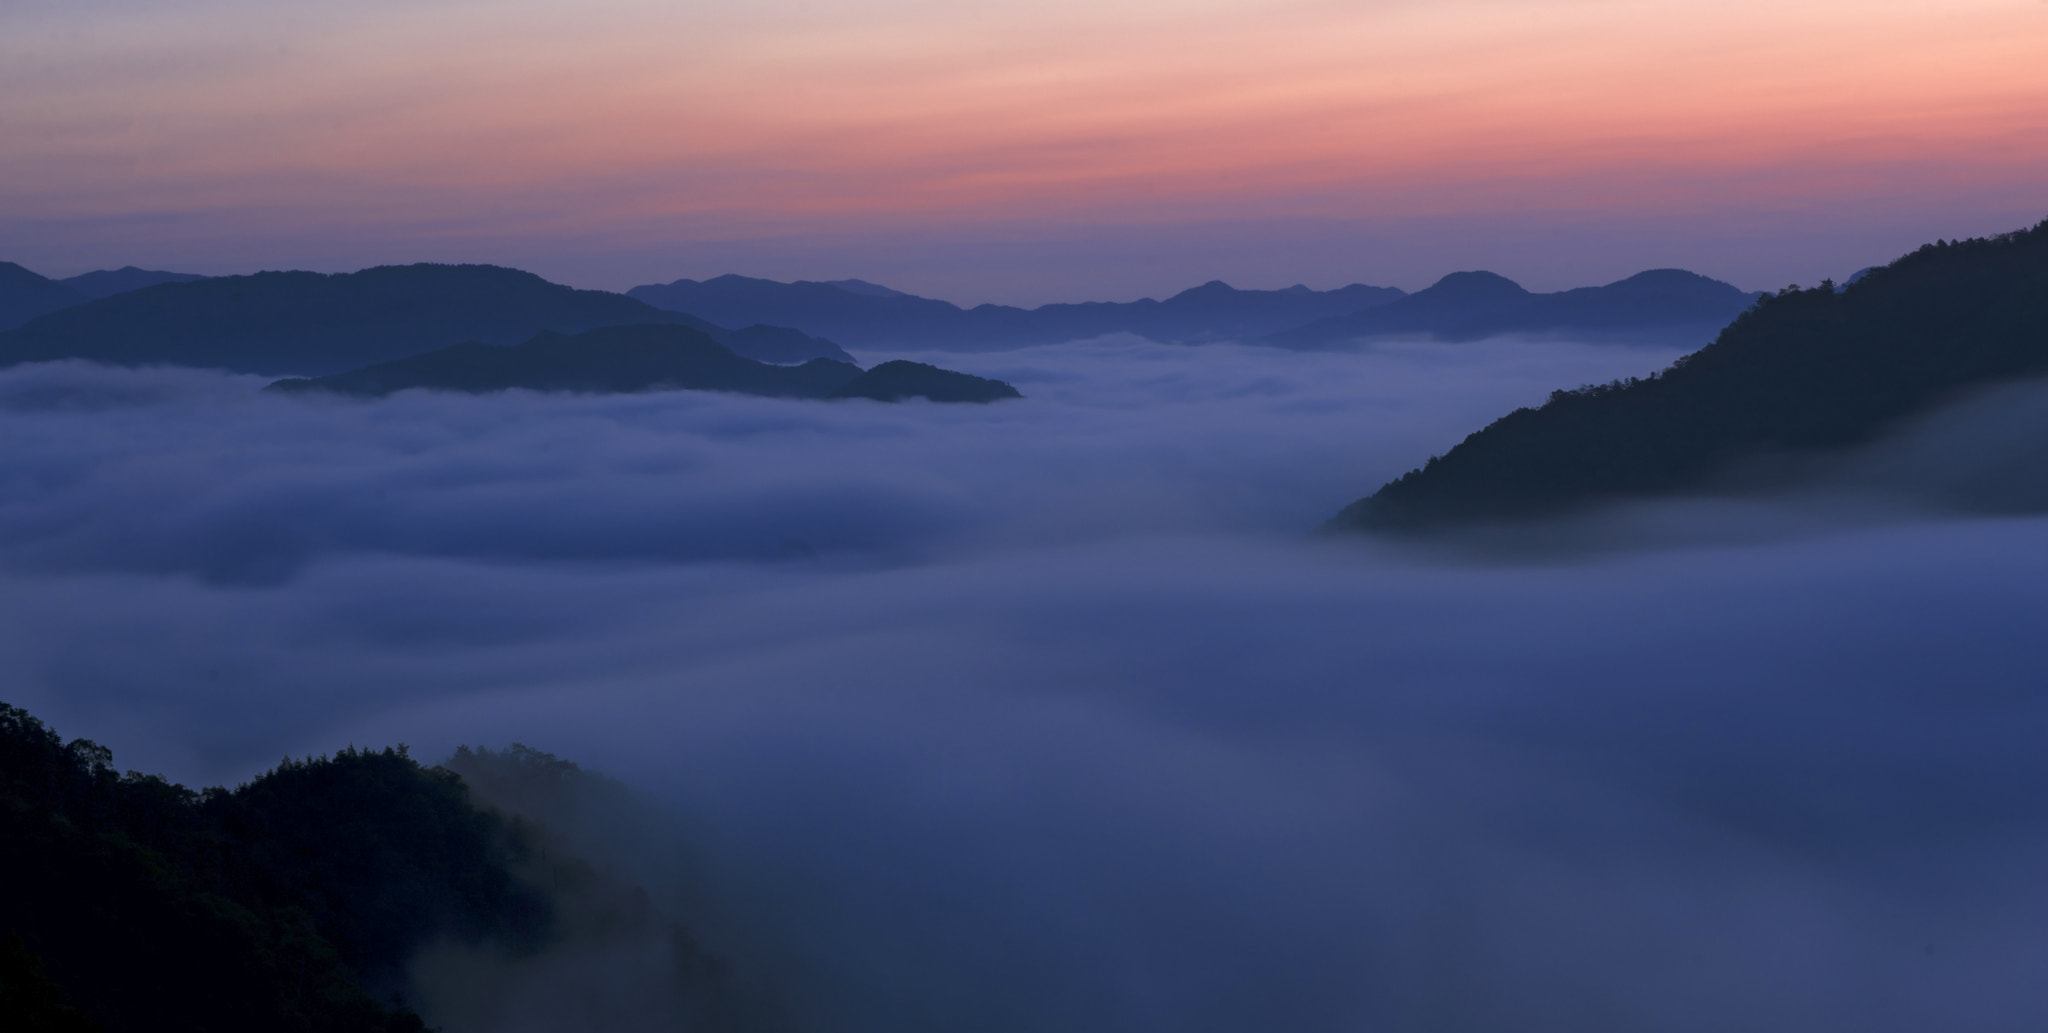 Photograph Cloudland by hugh dornan on 500px